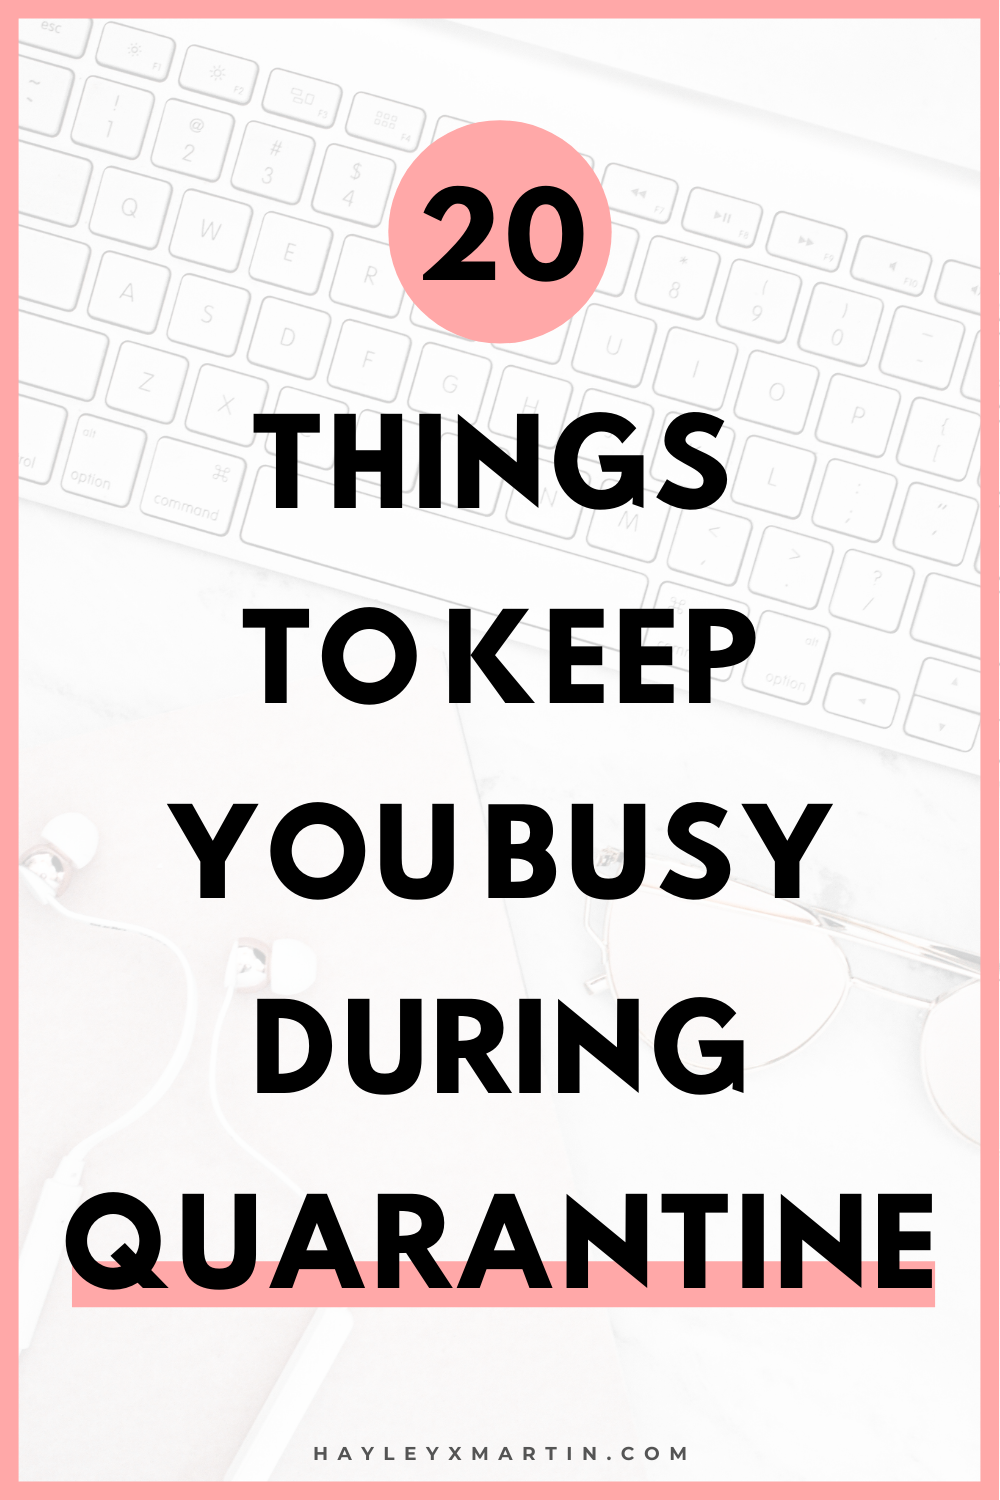 20 THINGS TO KEEP YOU BUSY DURING QUARANTINE | 20 PRODUCTIVE THINGS TO DO AT HOME | HAYLEYXMARTIN